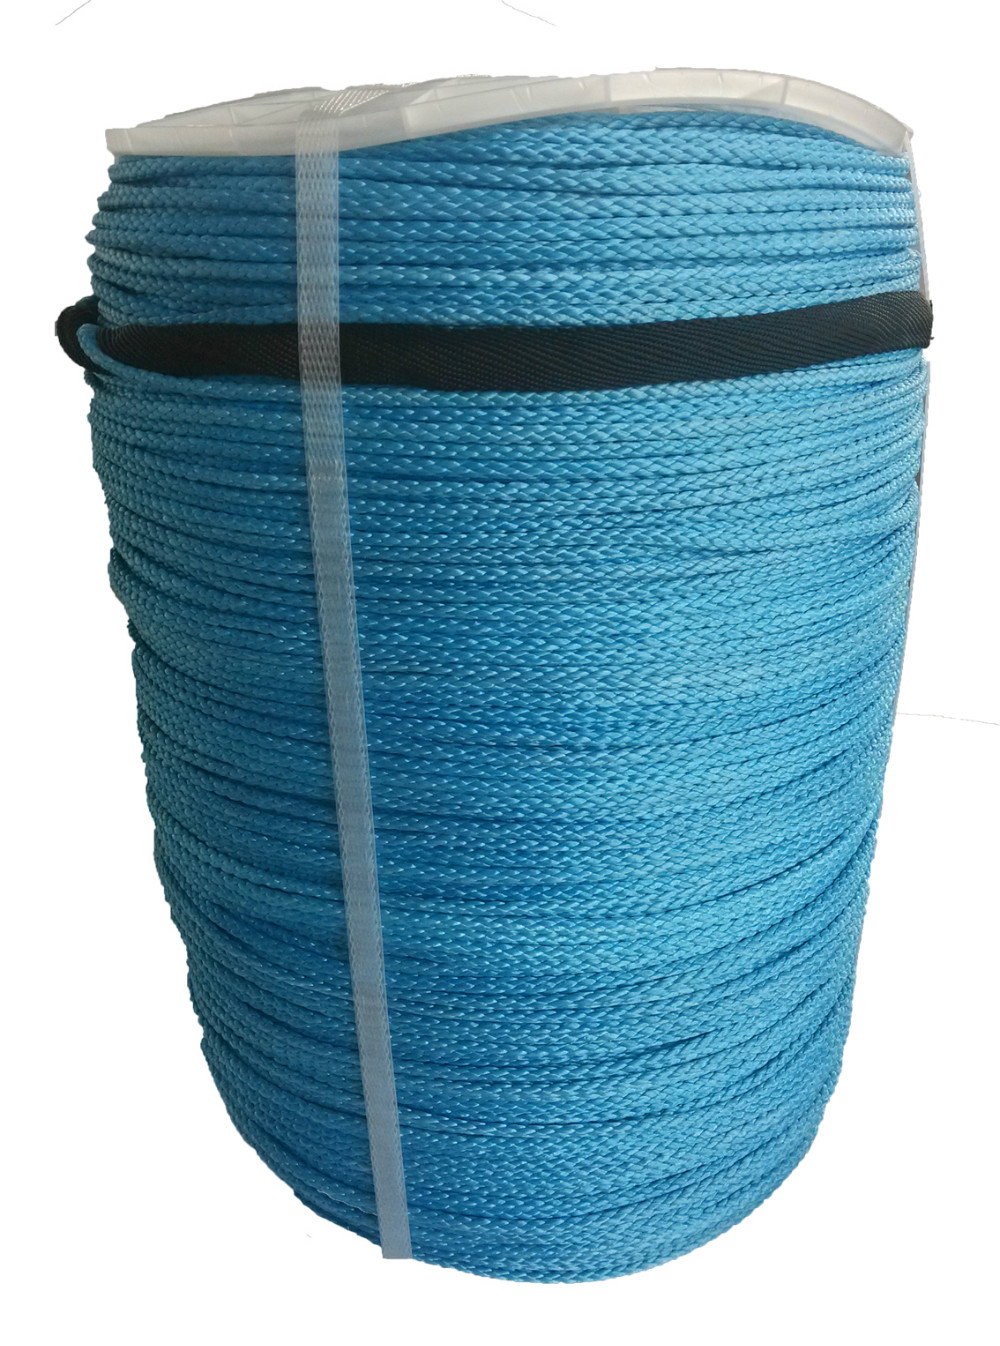 6mm x 100meters 12 strand synthetic UHMWPE rope sailing rope free shipping(China (Mainland))